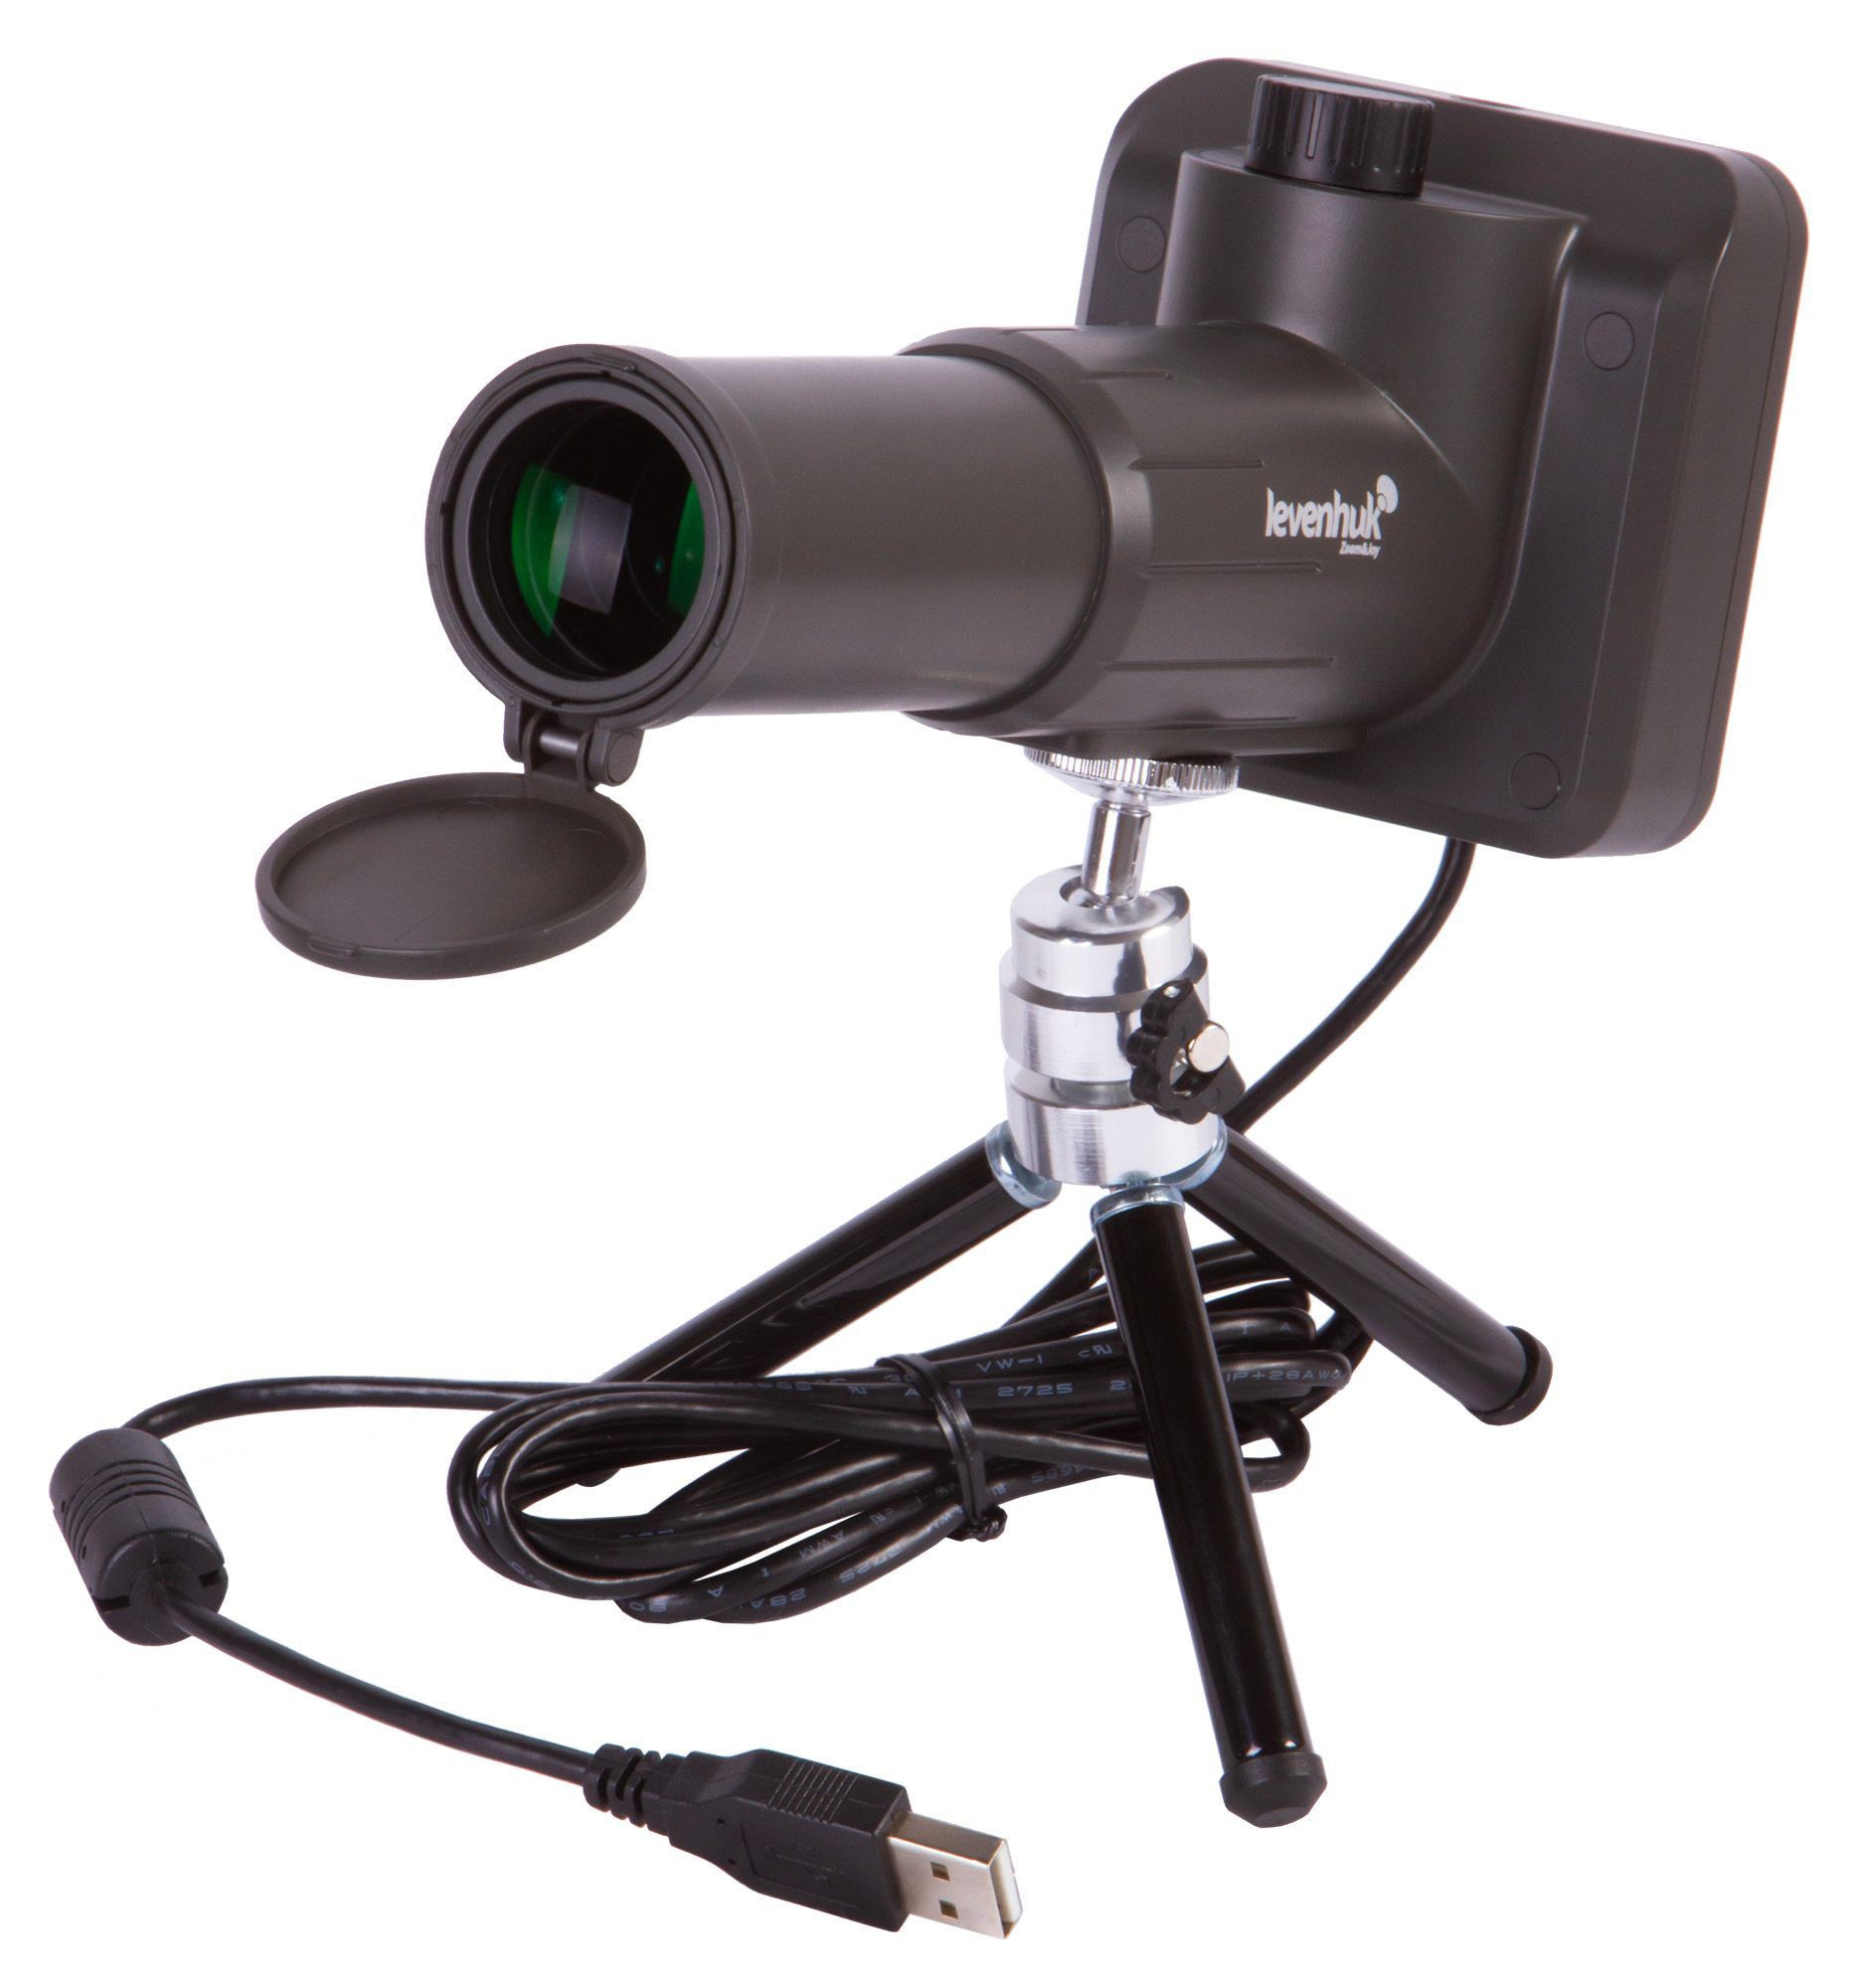 Levenhuk Blaze D200 Digital Spotting Scope image